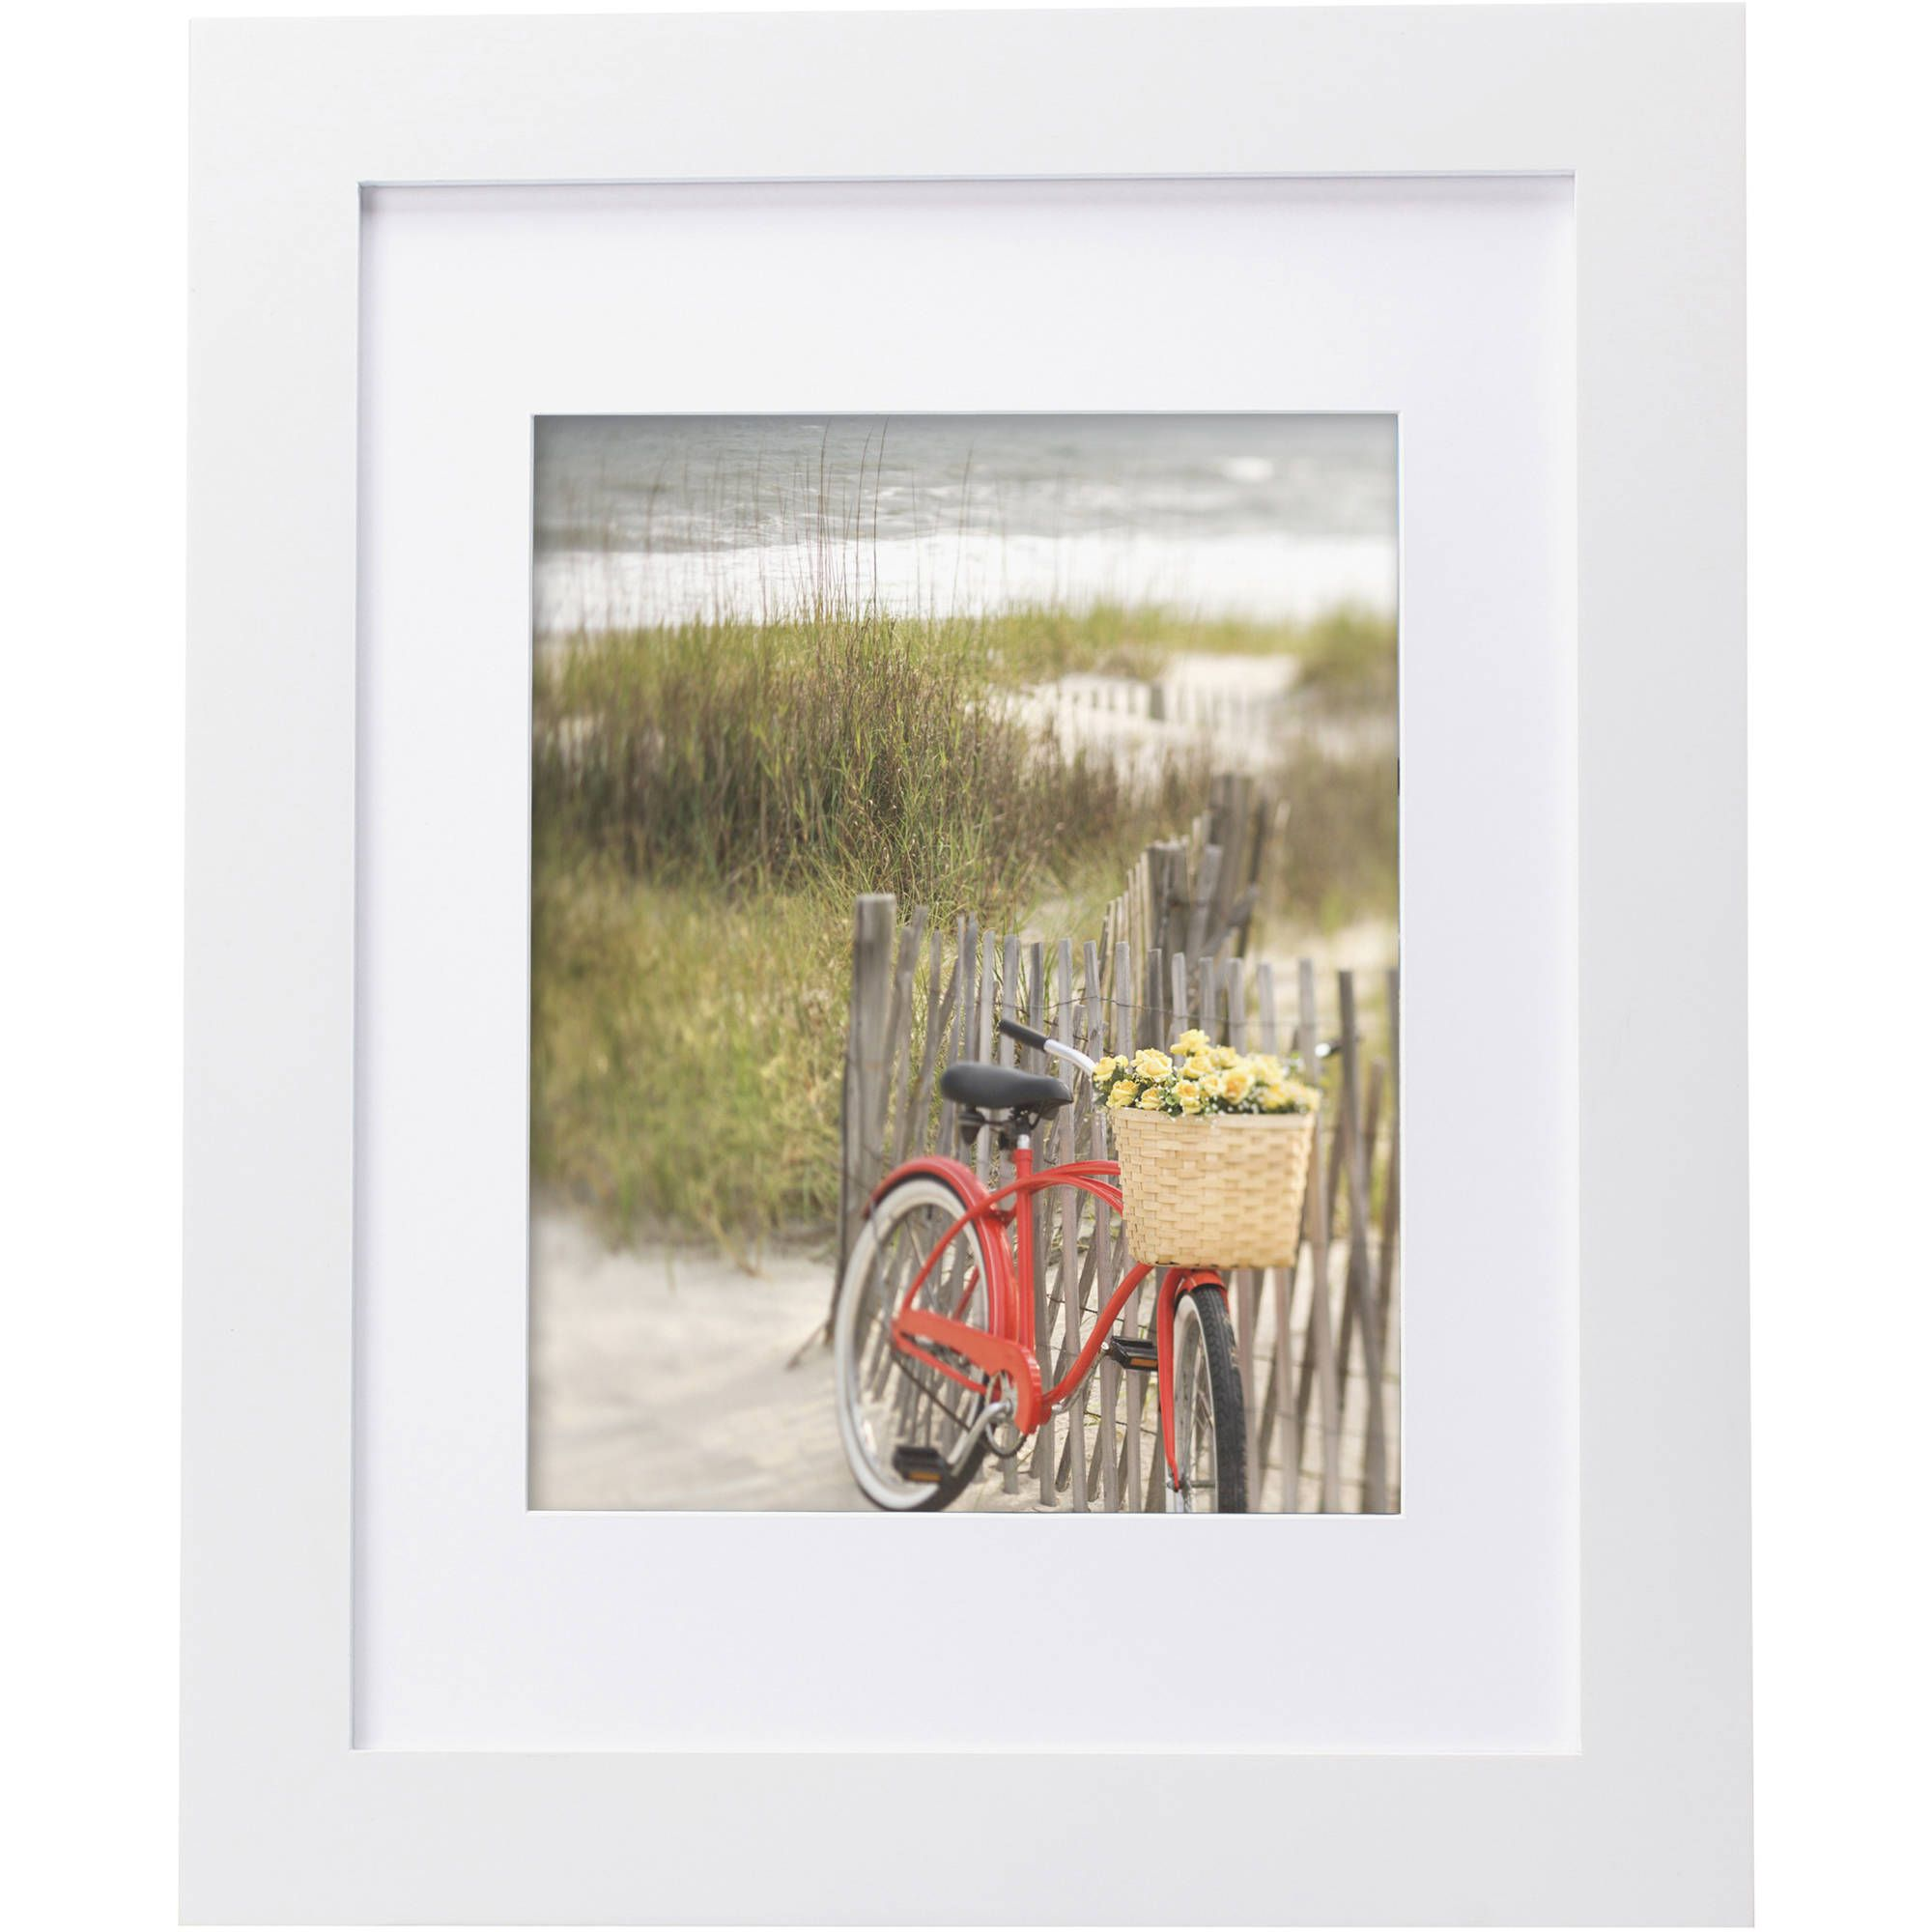 Free 2 Day Shipping On Qualified Orders Over 35 Buy Mainstays Museum 11 X 14 Matted To 8 X 10 Picture F White Picture Frames Picture Frames White Picture